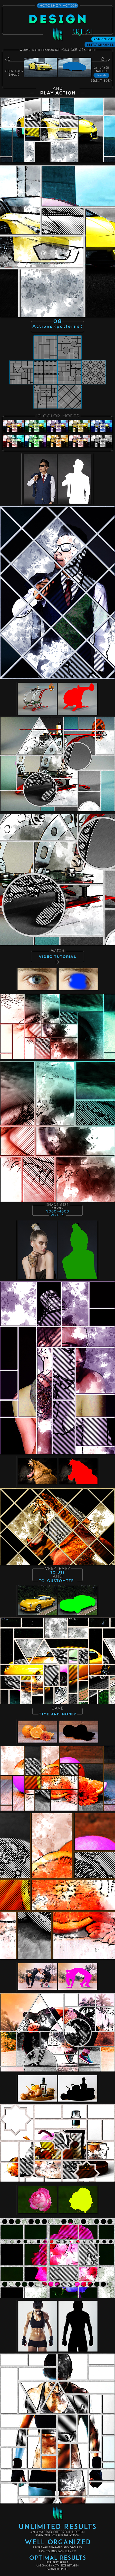 GraphicRiver Design Artist Photoshop Action 20963235